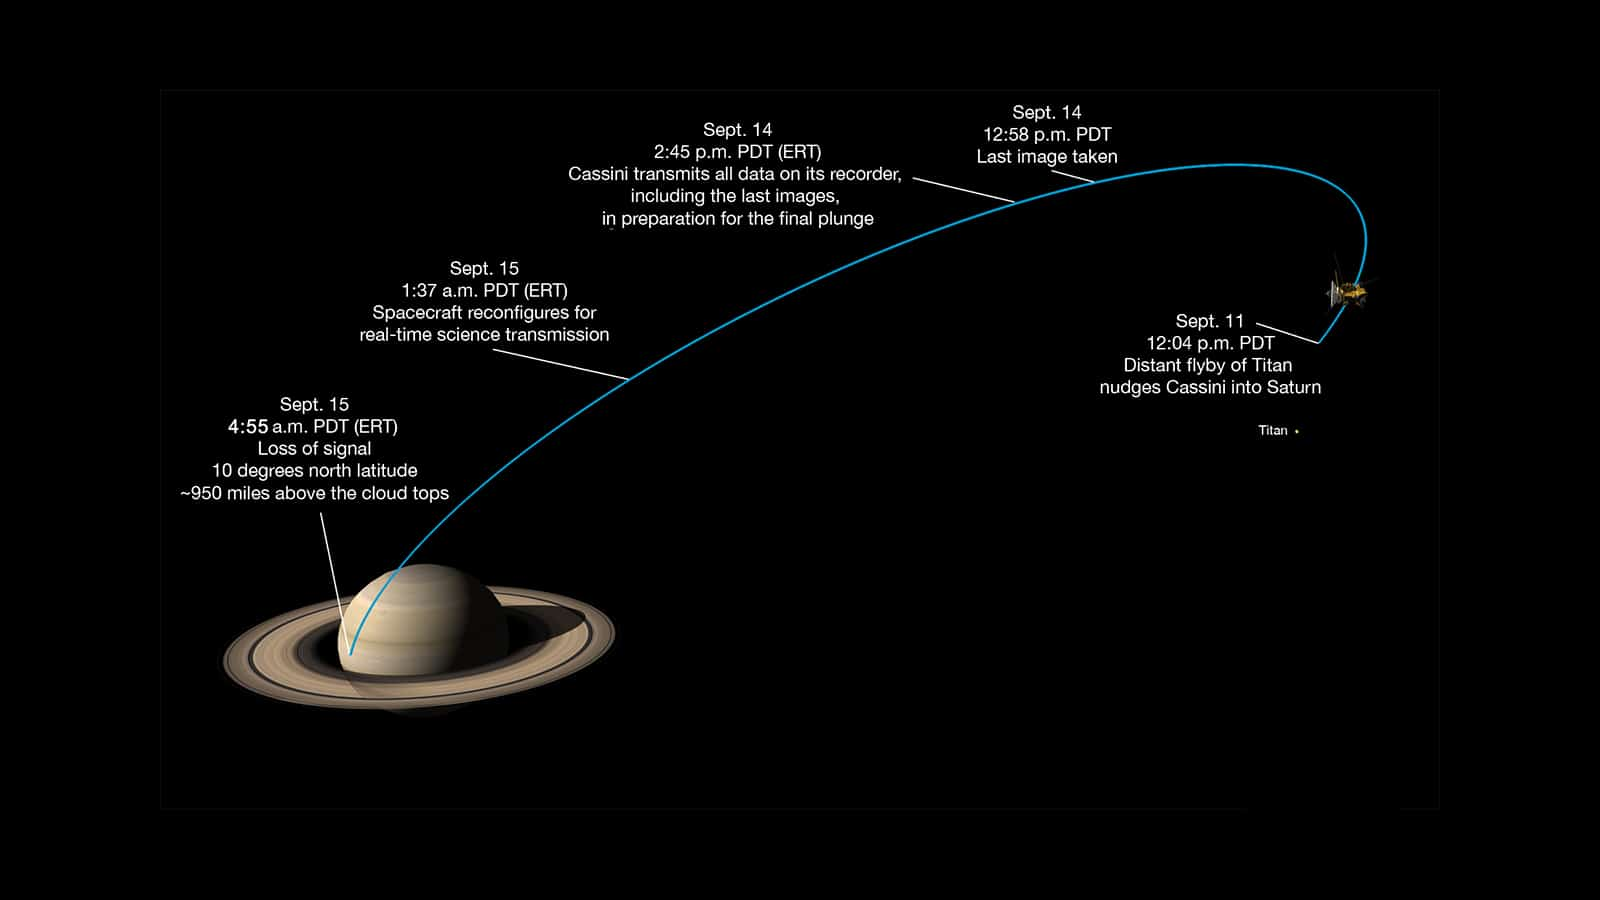 Timeline of last flyby